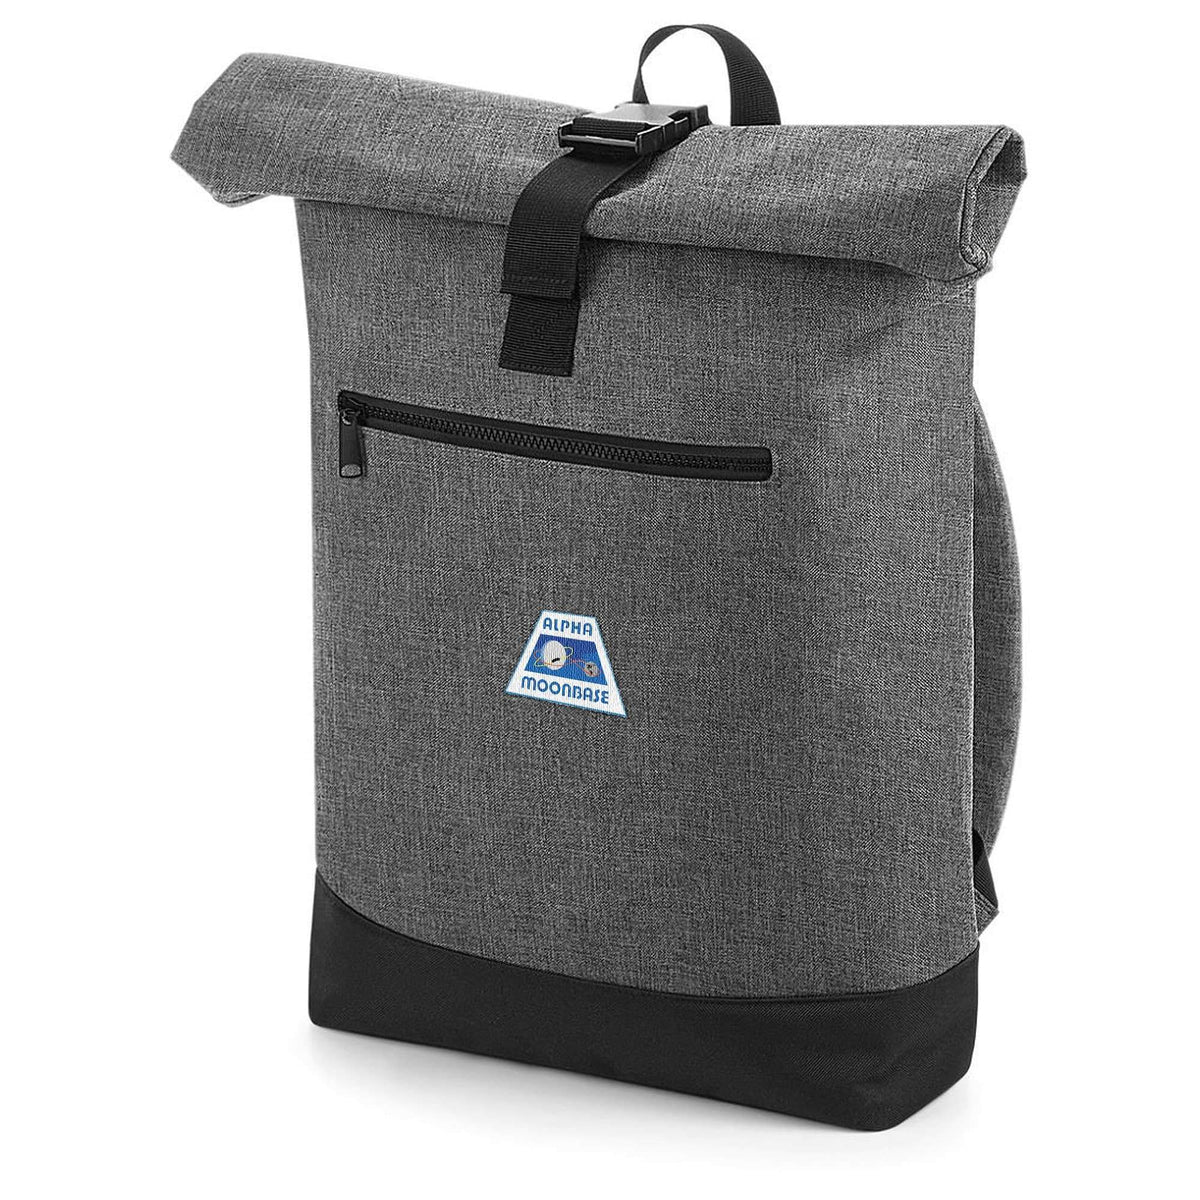 Moonbase Alpha/Space:1999 Rolltop Backpack [Official & Exclusive] - The Gerry Anderson Store